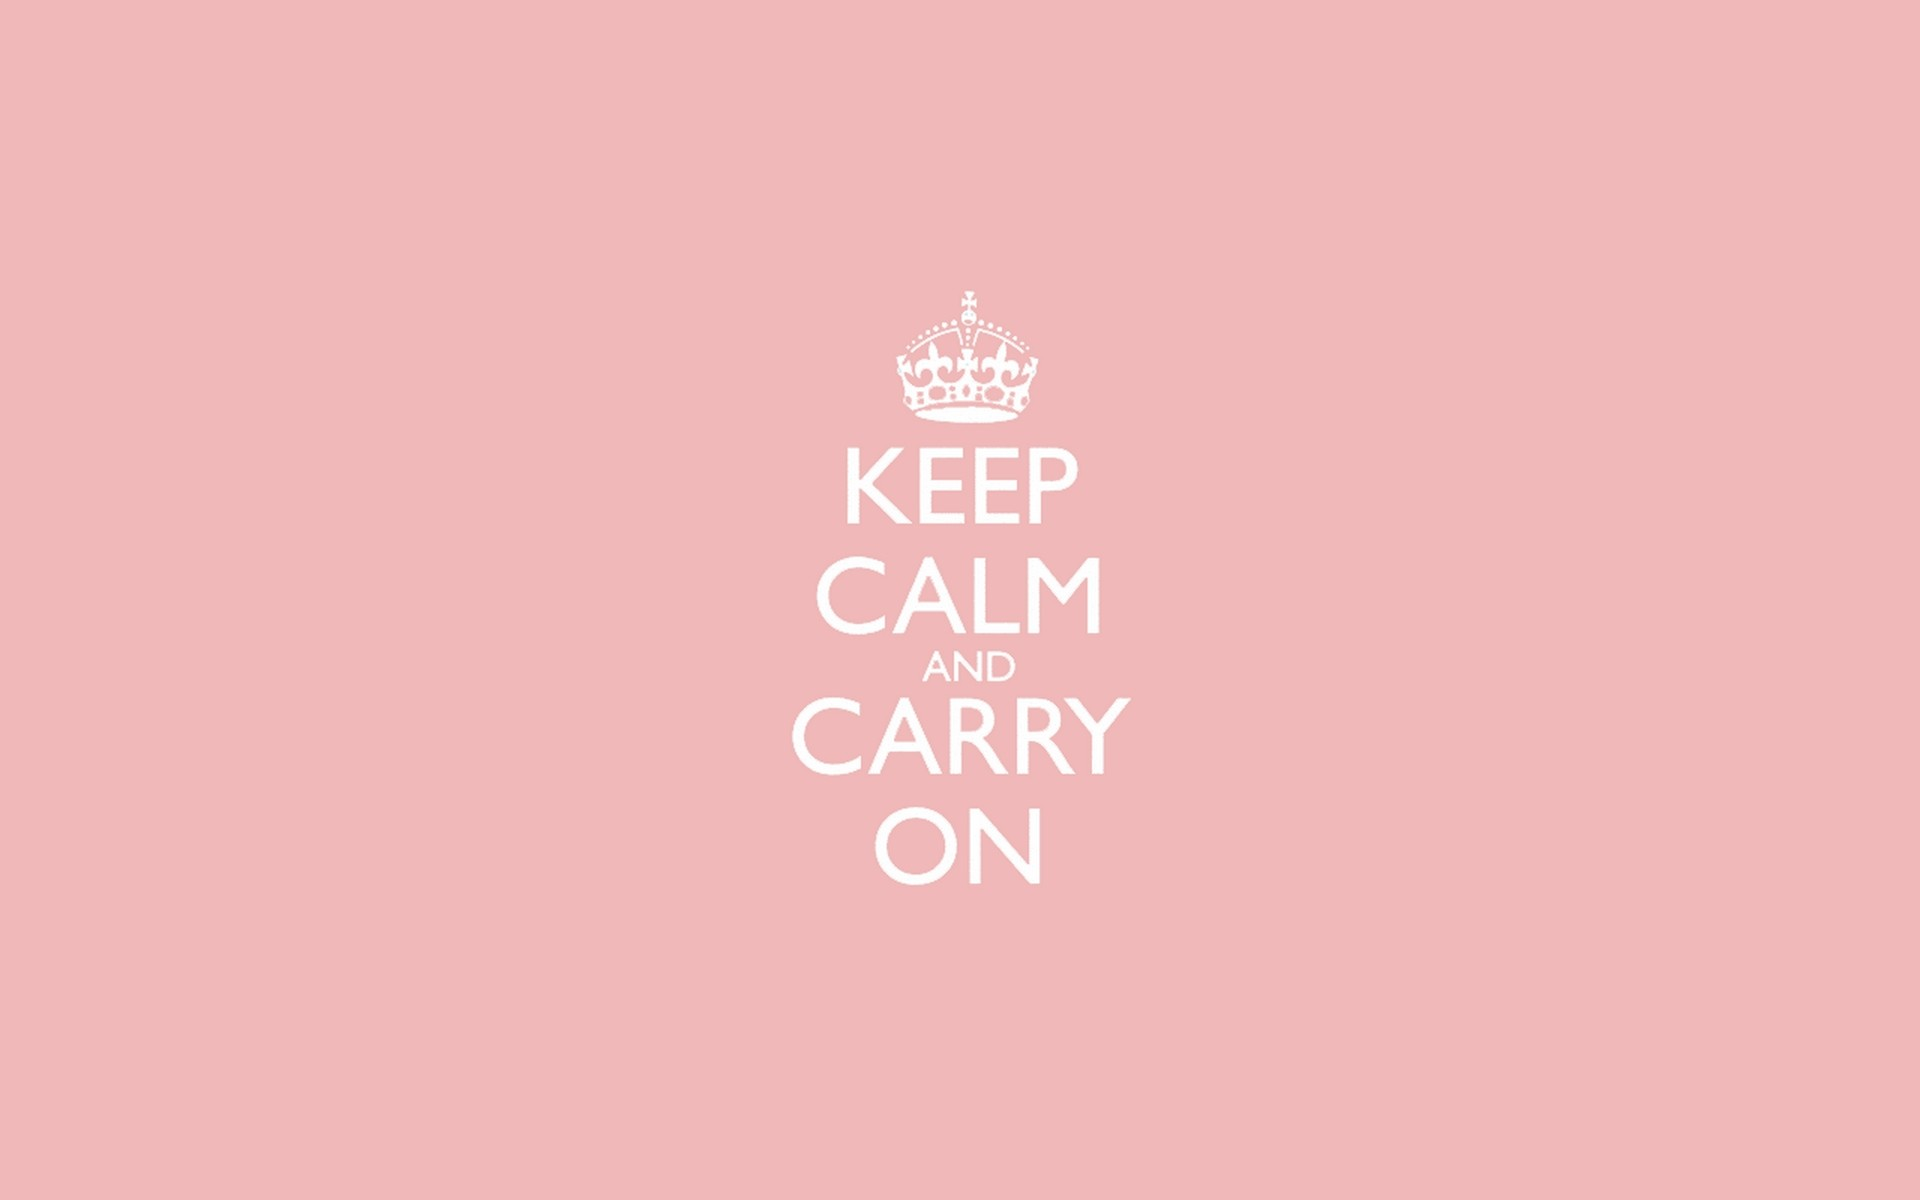 1920x1200 Keep Calm and Carry Wallpaper, Vintage, Desktop Wallpaper, Keep Calm .